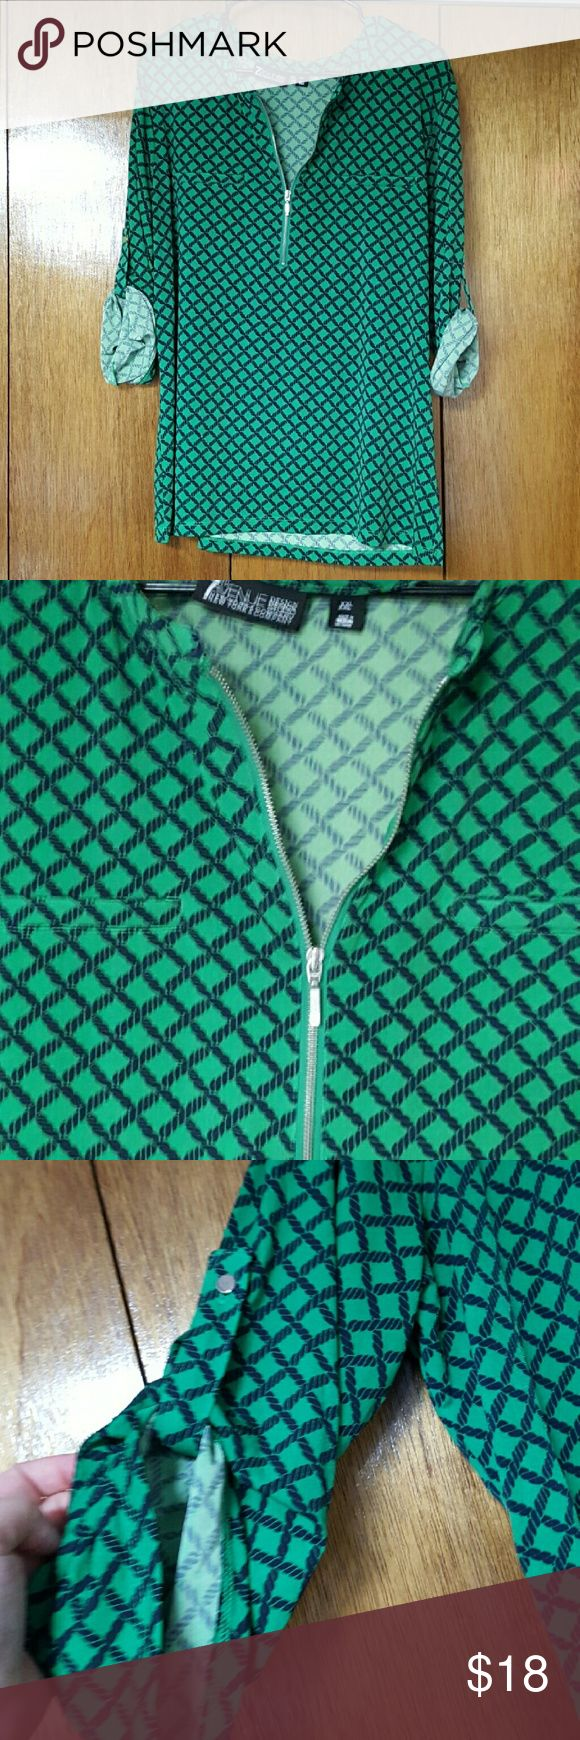 Green half zip 3 quarter sleeve shirt Really pretty green half zip 3 quarter length sleeve shirt from New York and Company 7th avenue collection. Sleeves can be worn slouchy or rolled.  Only worn once! Xxl New York & Company Tops Blouses